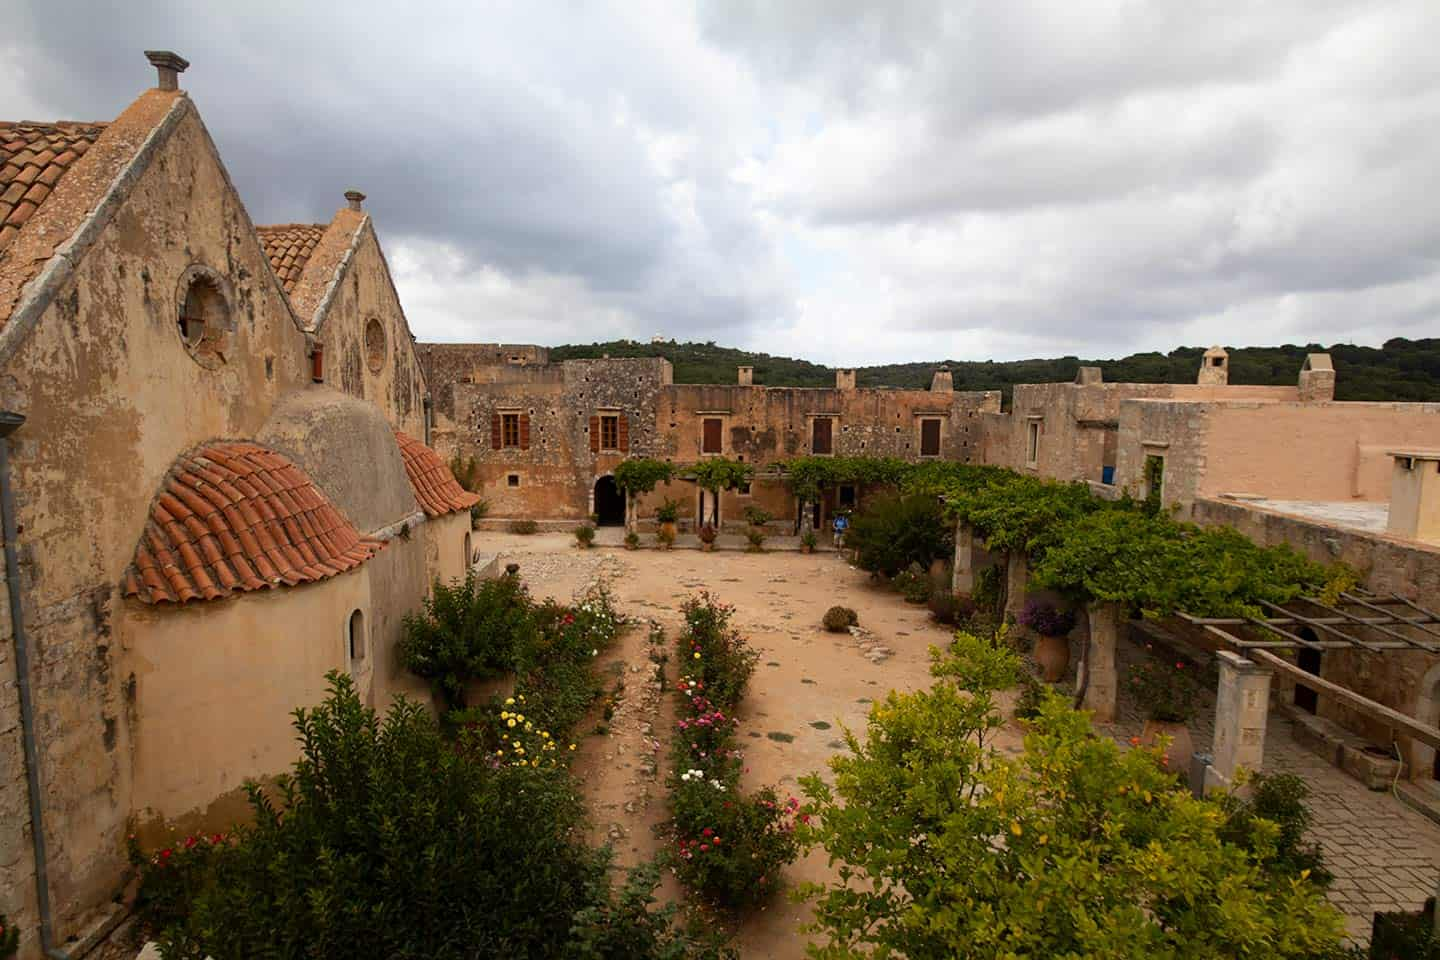 Image of the courtyard and church at Arkadi monastery